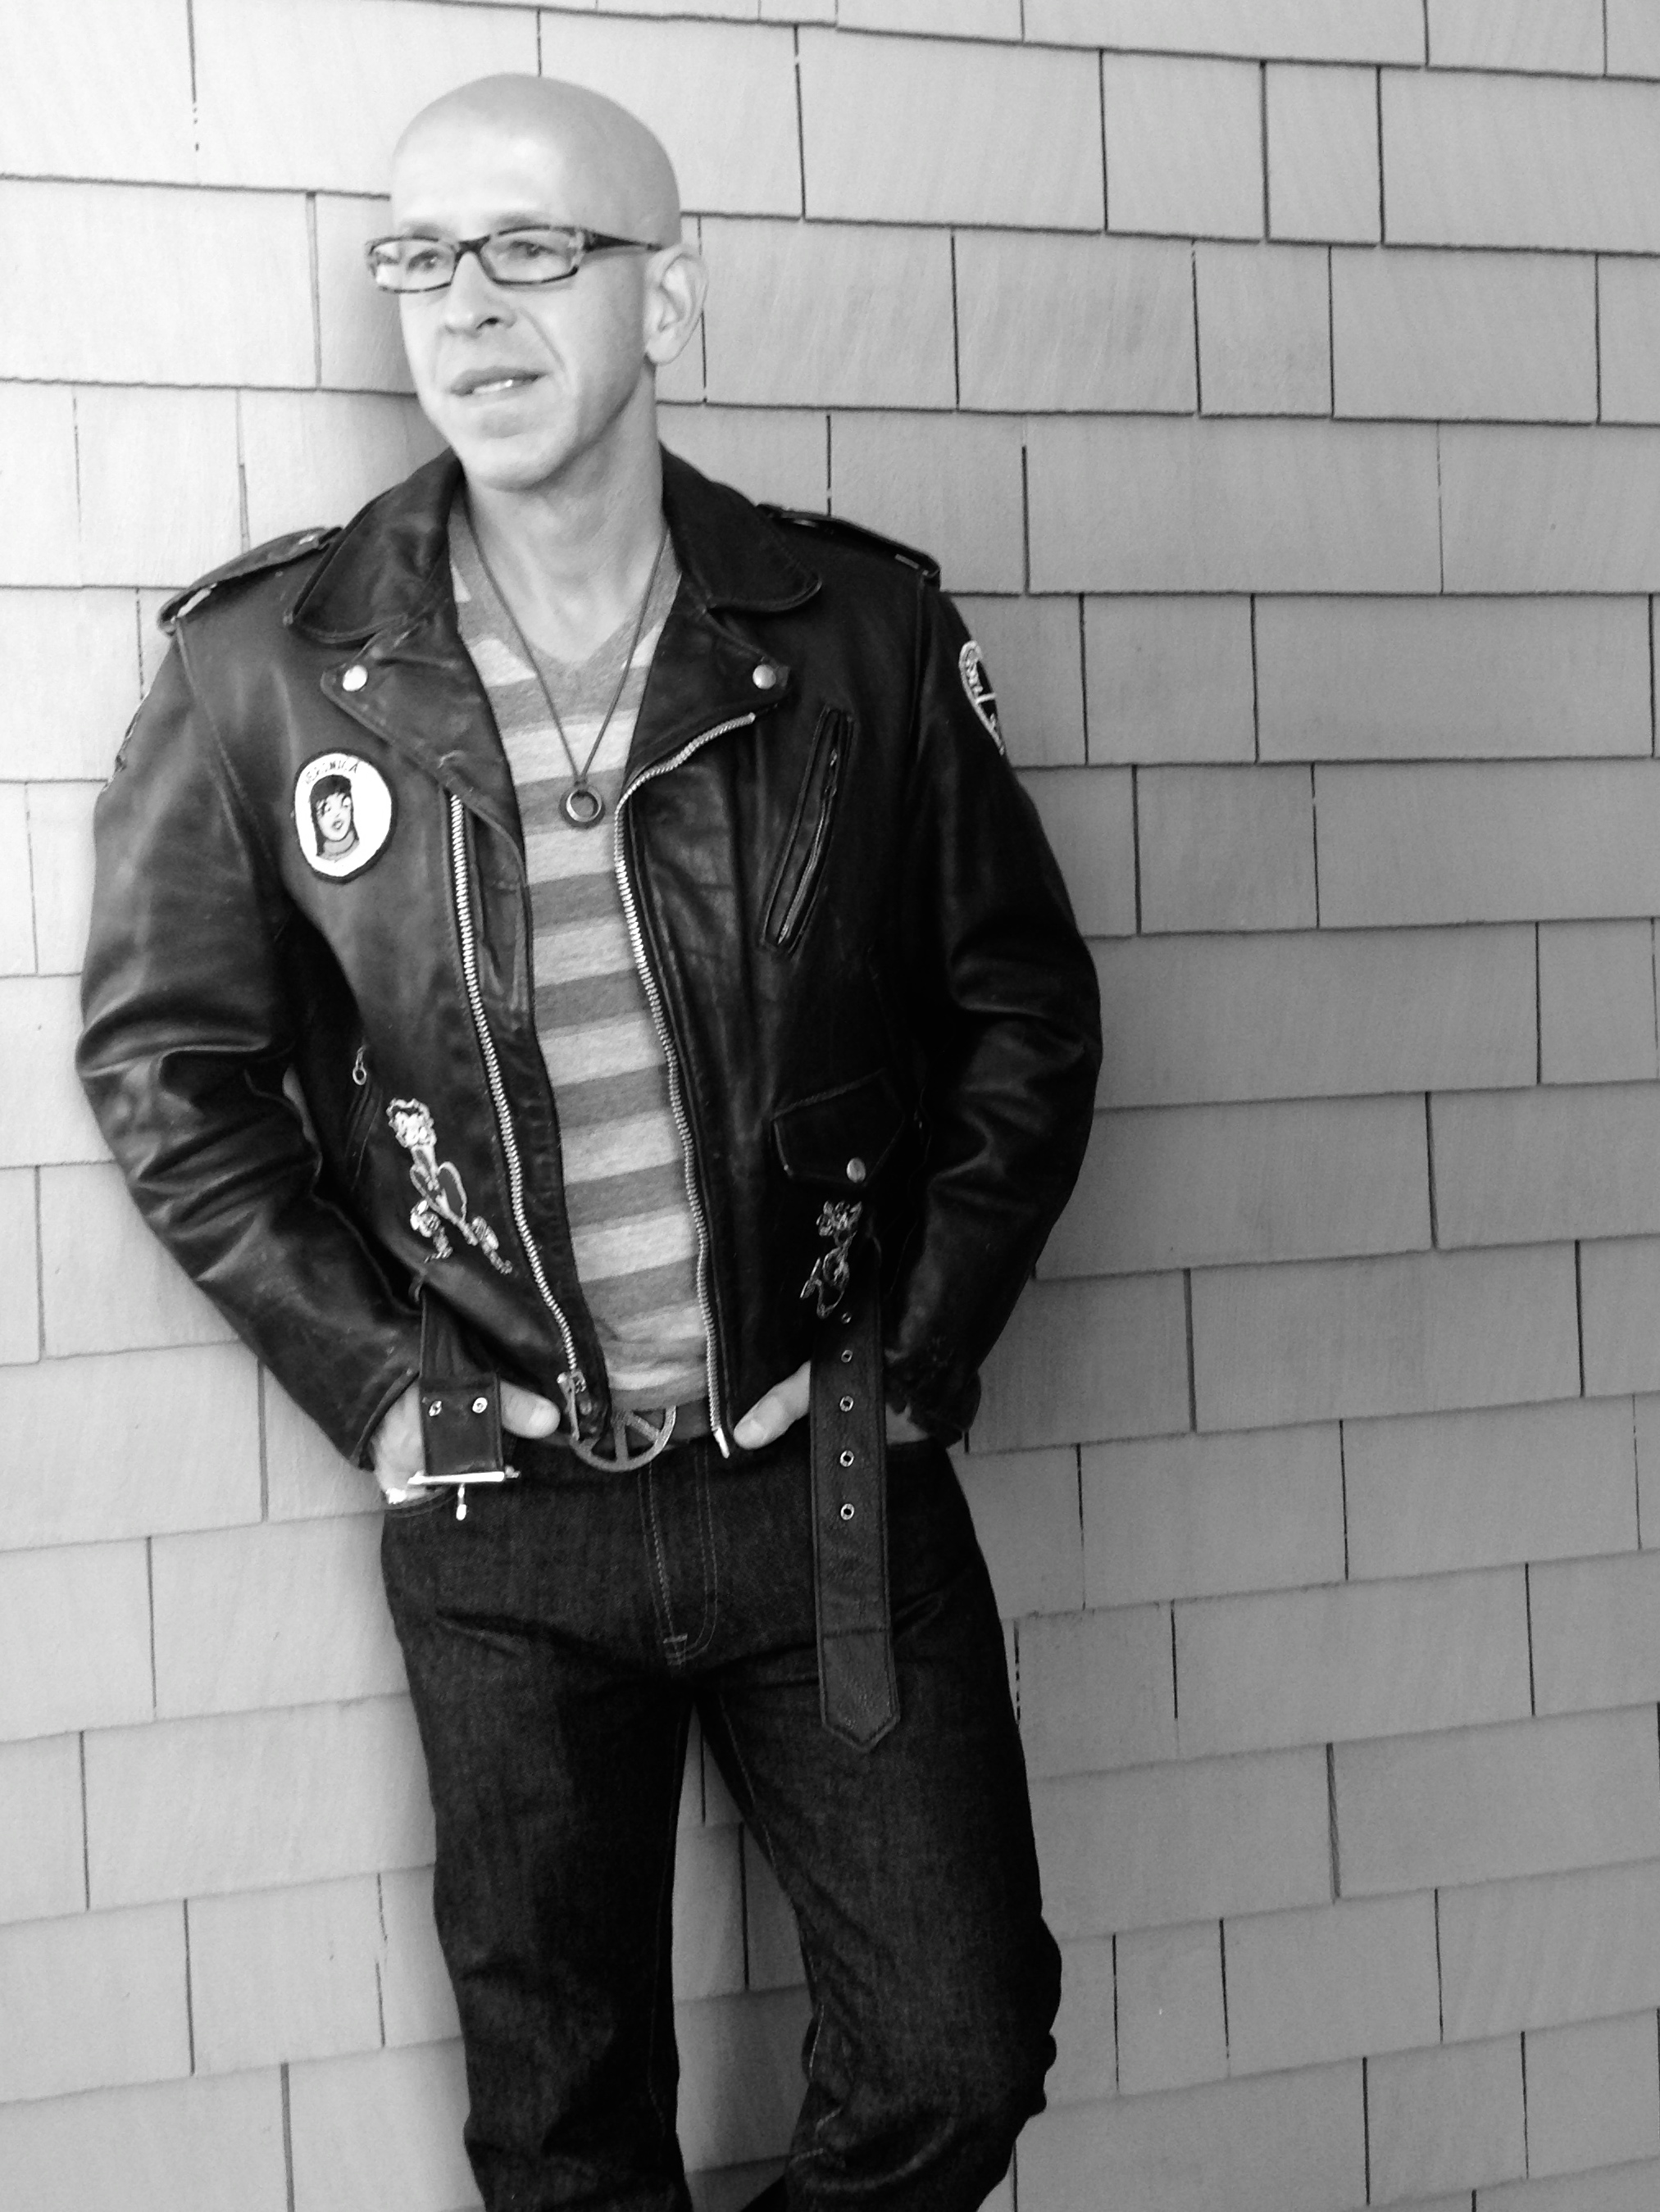 Leather jacket upkeep - For Though I Am A Father And A Copywriter When I Put On A Black Leather Jacket I Am Perfecto